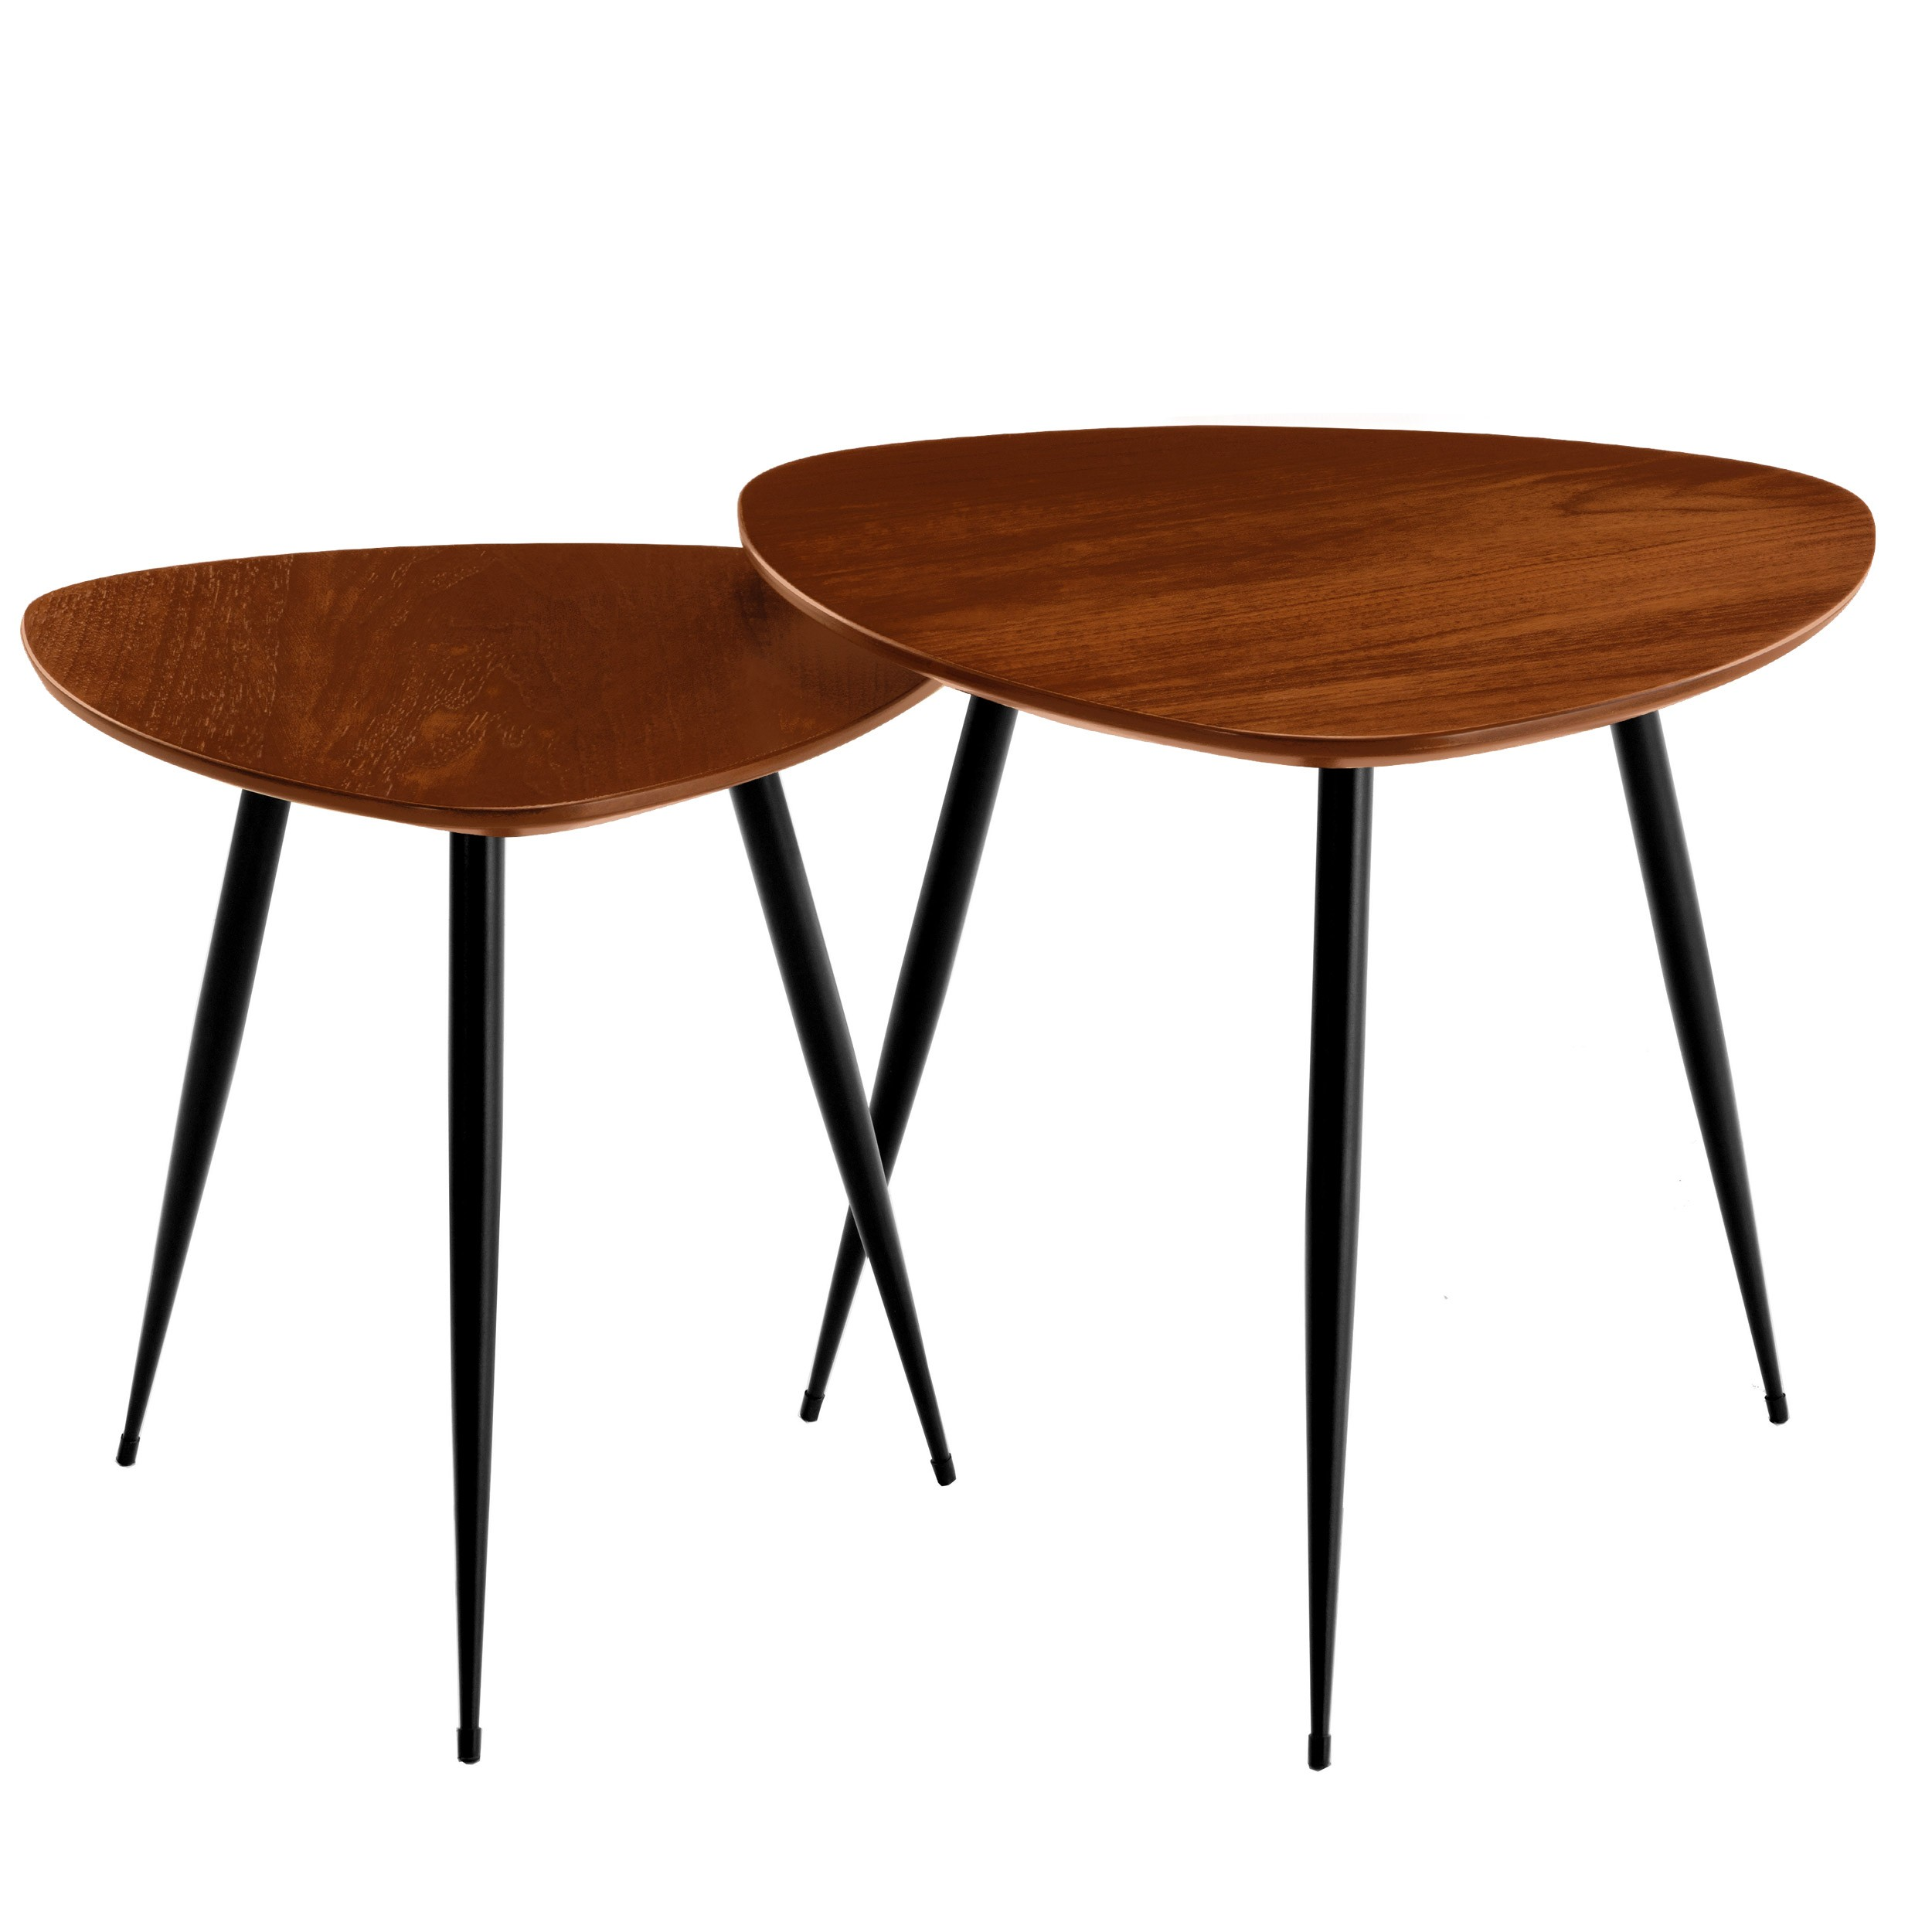 Table Salon Gigogne Tables Basses Scandinaves Bois Foncé Quercus Lot De 2